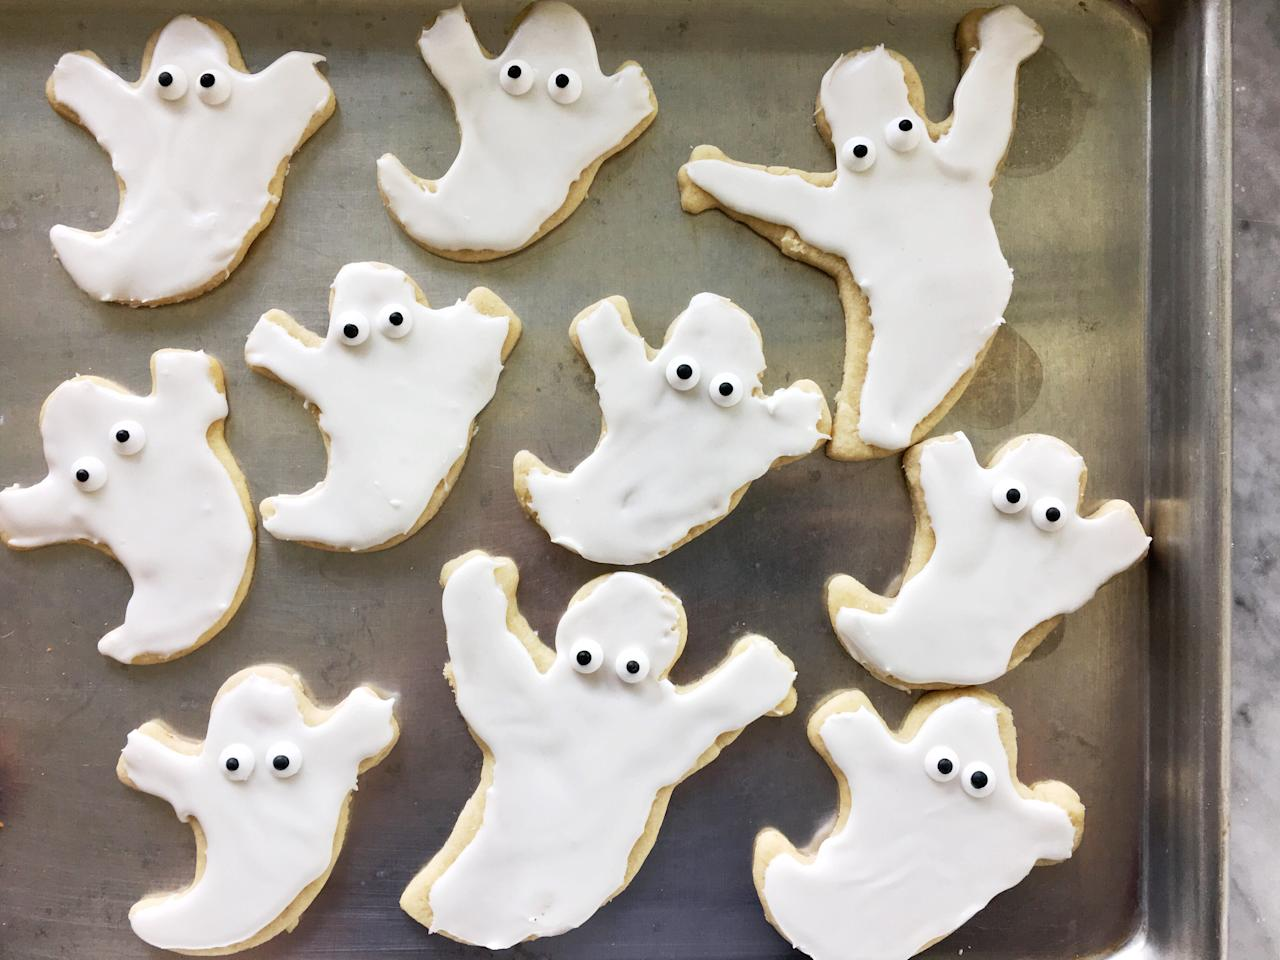 """<p>Prepare for a sweet scare when these adorable Halloween ghost cookies are all iced, decorated, and ready to party. Super easy and<a href=""""https://www.myrecipes.com/how-to/halloween-ideas-for-kids""""> kid-friendly to make</a>, these butter cut-out cookies coated with royal icing are the perfect dessert for <a href=""""https://www.myrecipes.com/holidays-and-occasions/halloween-recipes/halloween-party-food-ideas"""">your Halloween spread</a>. Candy eyeballs add a playful, whimsical touch to these <a href=""""https://www.myrecipes.com/holidays-and-occasions/halloween-recipes/halloween-treat-recipes"""">spooky treats</a>, but you could also use black icing to draw eyes on your ghost cookies. Using a classic <a href=""""https://www.myrecipes.com/recipe/cut-out-butter-cookies"""">cut-out butter cookie dough</a> keeps the edges of your ghost cookies shape neat and clean—no worries about the cookies expanding when they bake. Whip up a batch with the kids and let them go to town with the decorating for a fun Halloween kitchen activity.</p> <p><a href=""""https://www.myrecipes.com/recipe/ghost-cookies"""">Ghost Cookies Recipe</a></p>"""